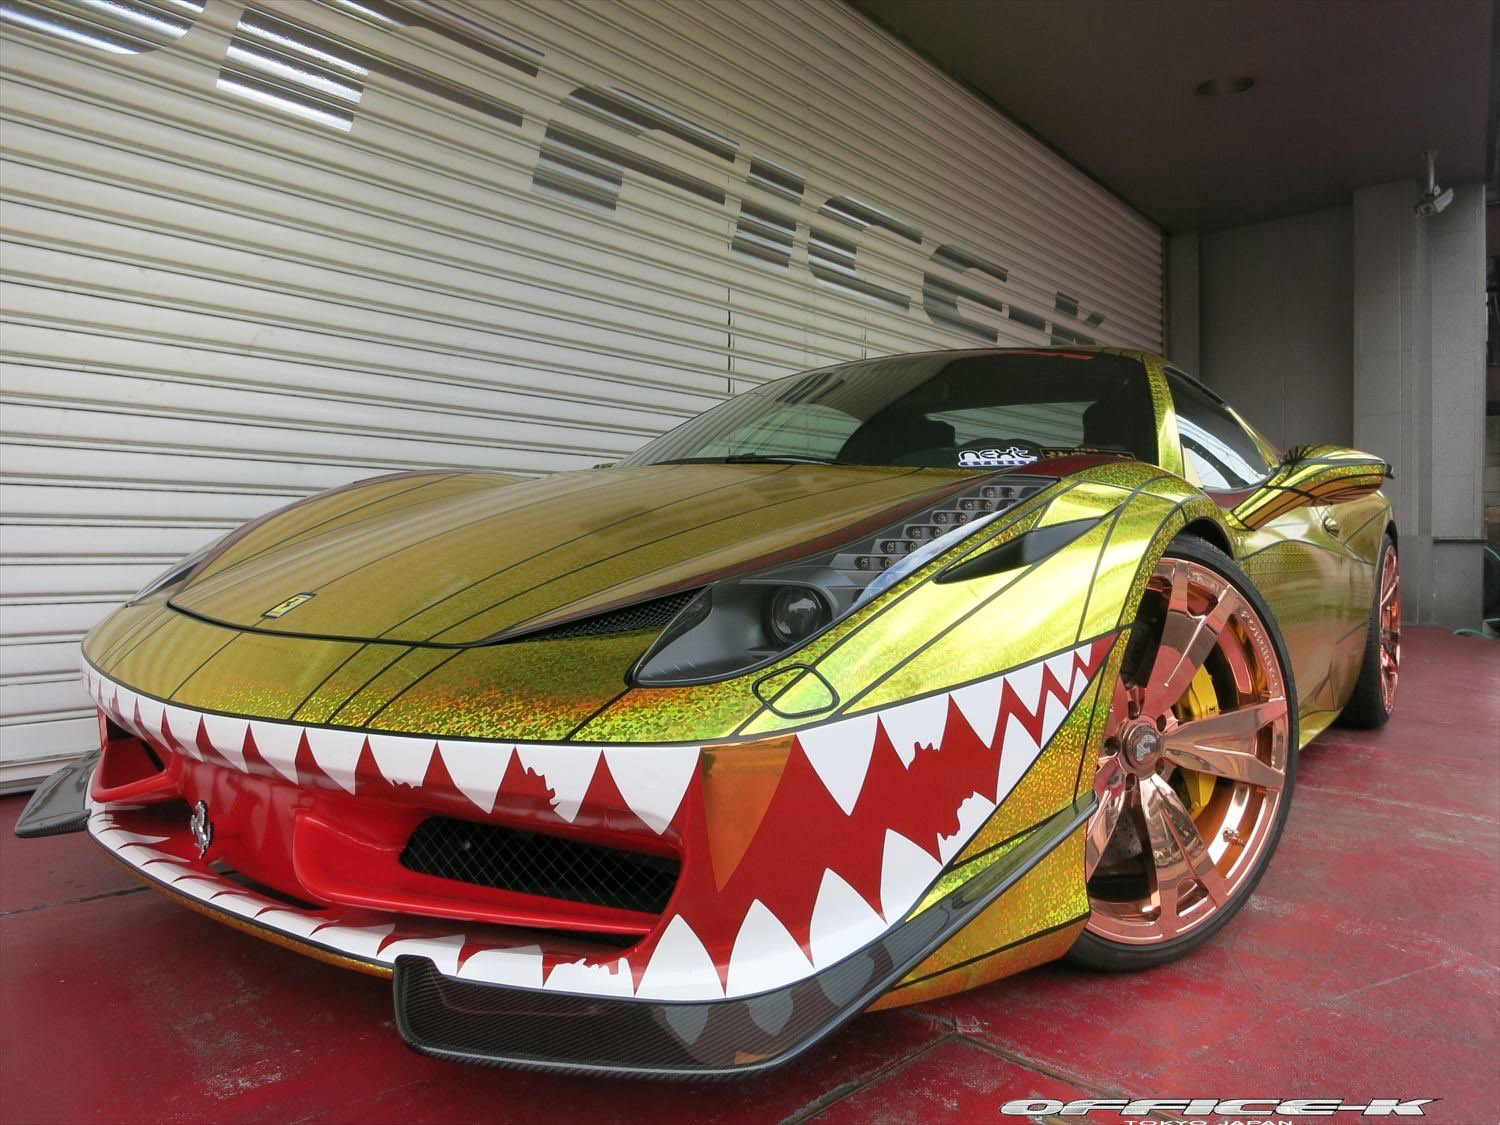 Best Car Wallpapers Ever Ferrari 458 Spider Uglier Than Ever